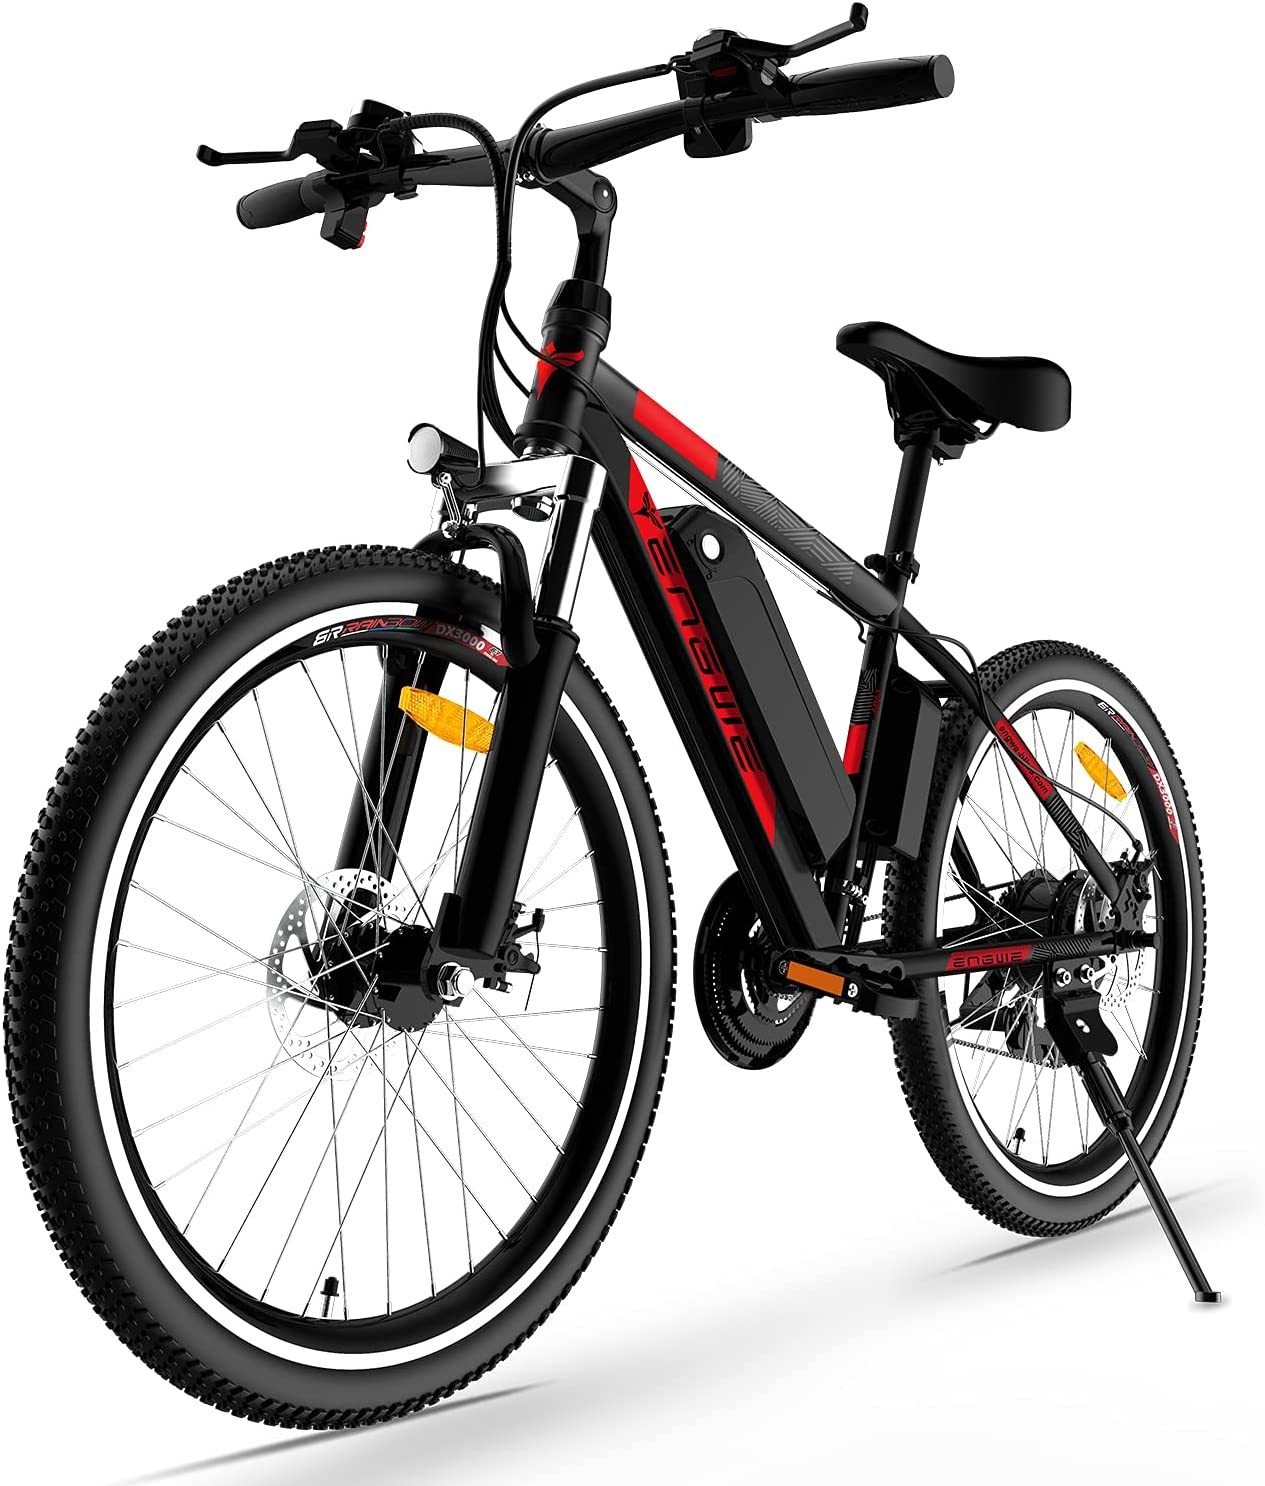 ENGWE Popular brand in the world Electric Bicycle for Adults 250W 26''Electri Under blast sales